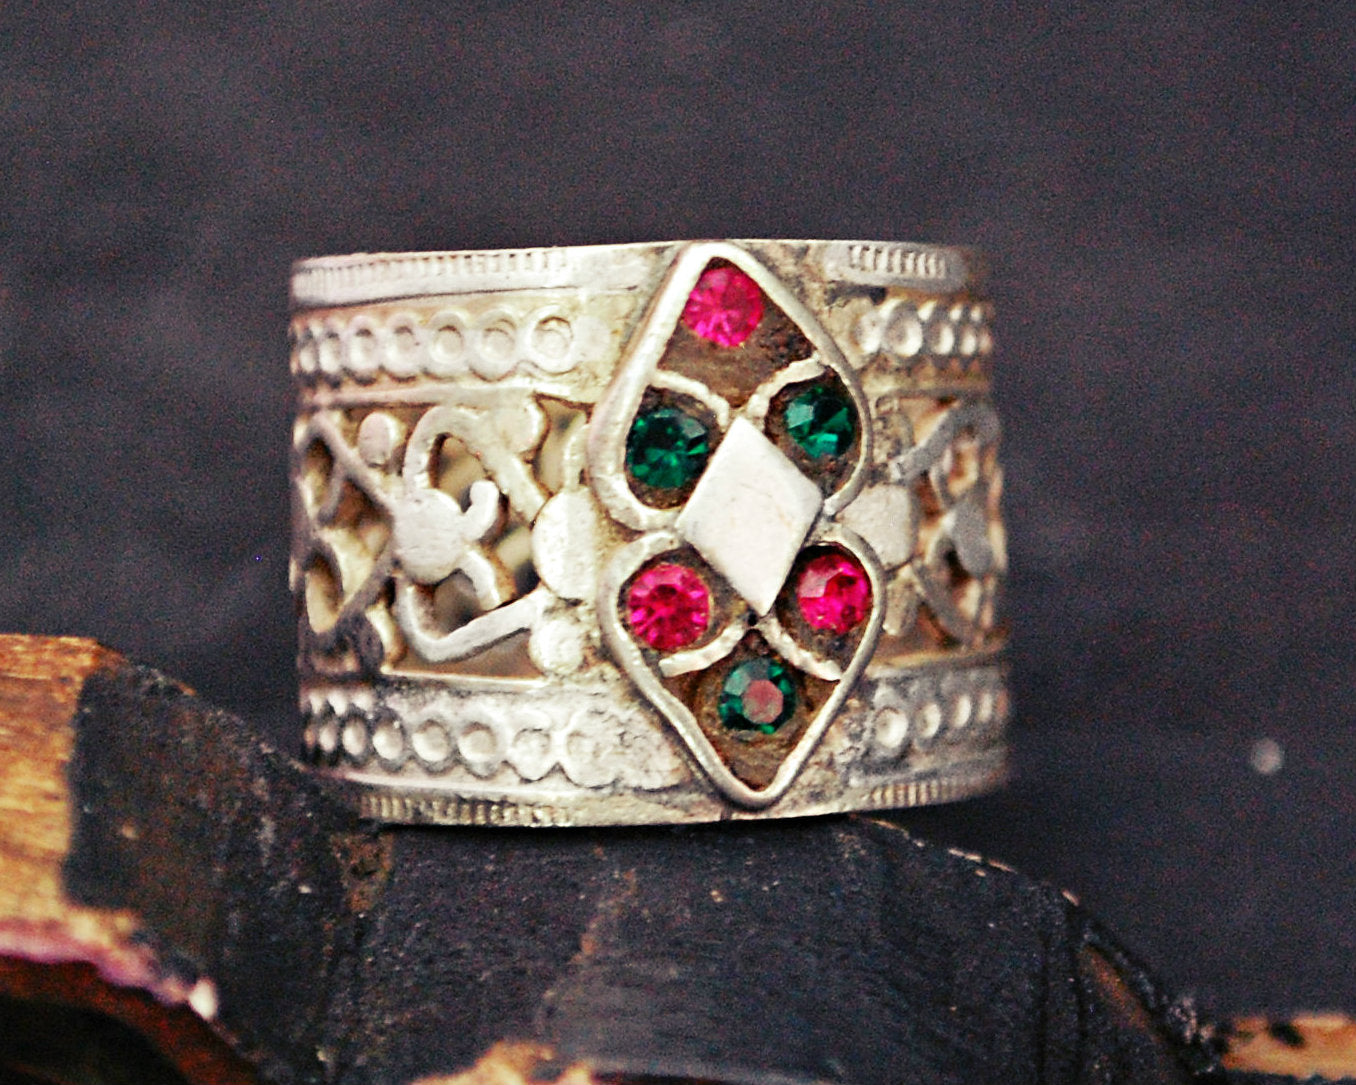 Antique Afghani Openwork Band Ring with Glass Stones - Size 8